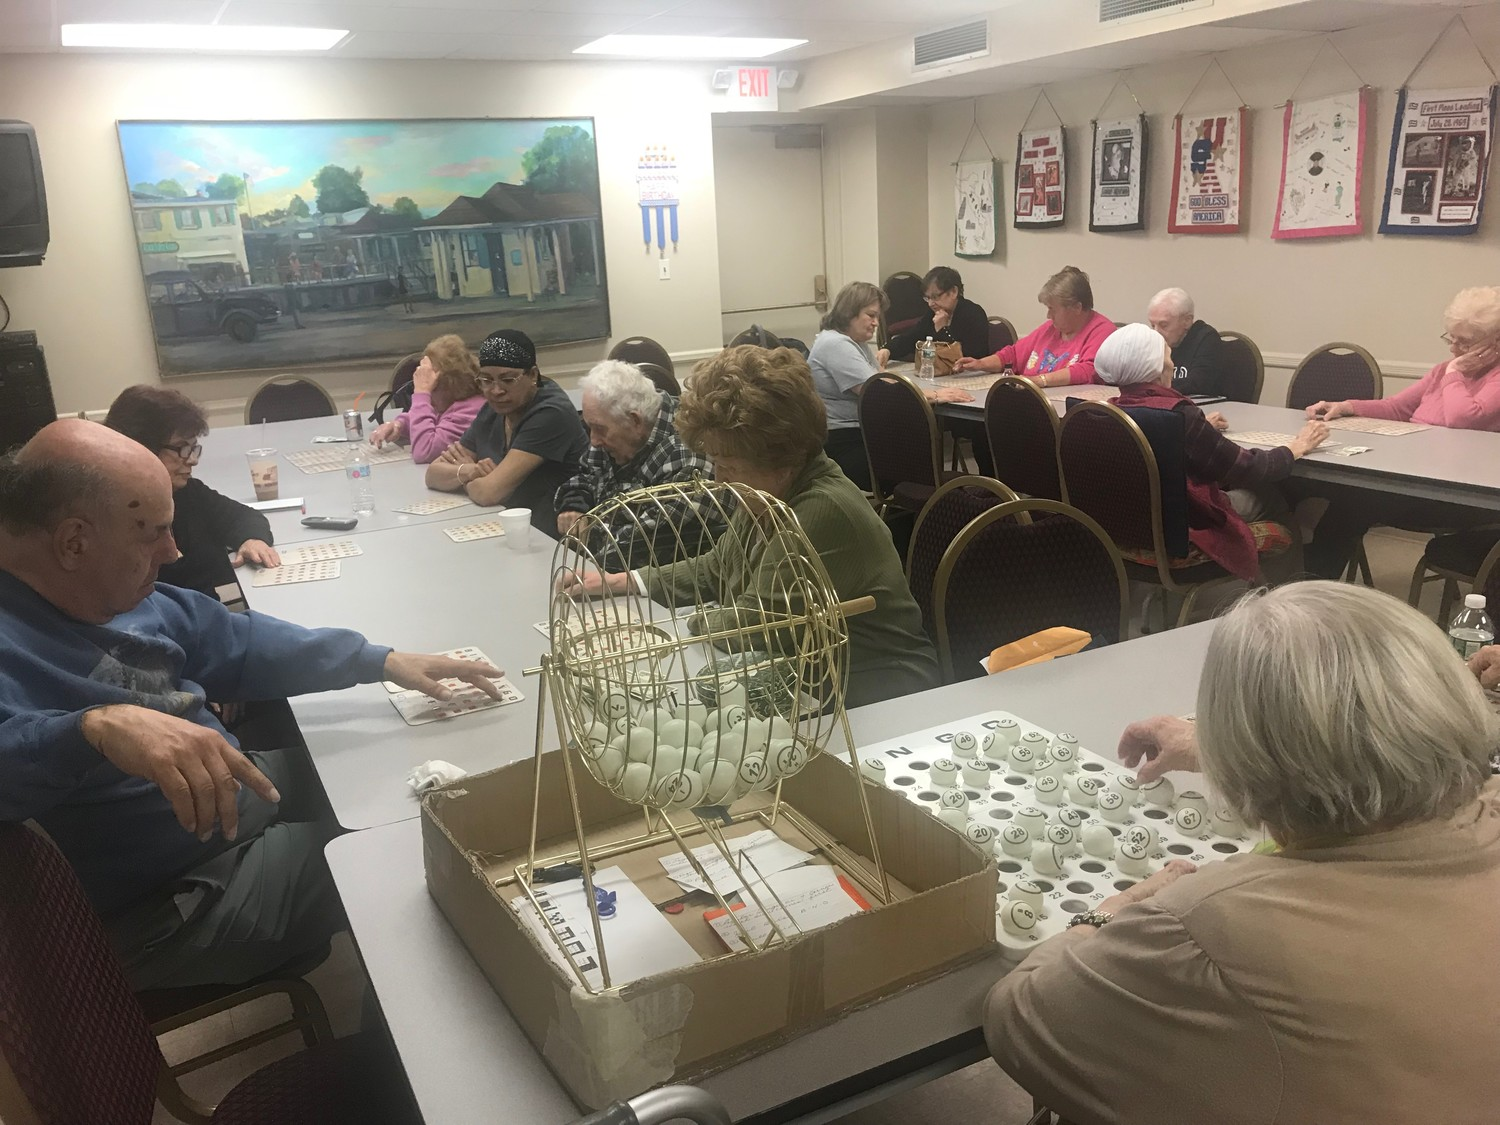 Bingo, above, and Pokeno were two of the activities many seniors cited as some of their favorites.